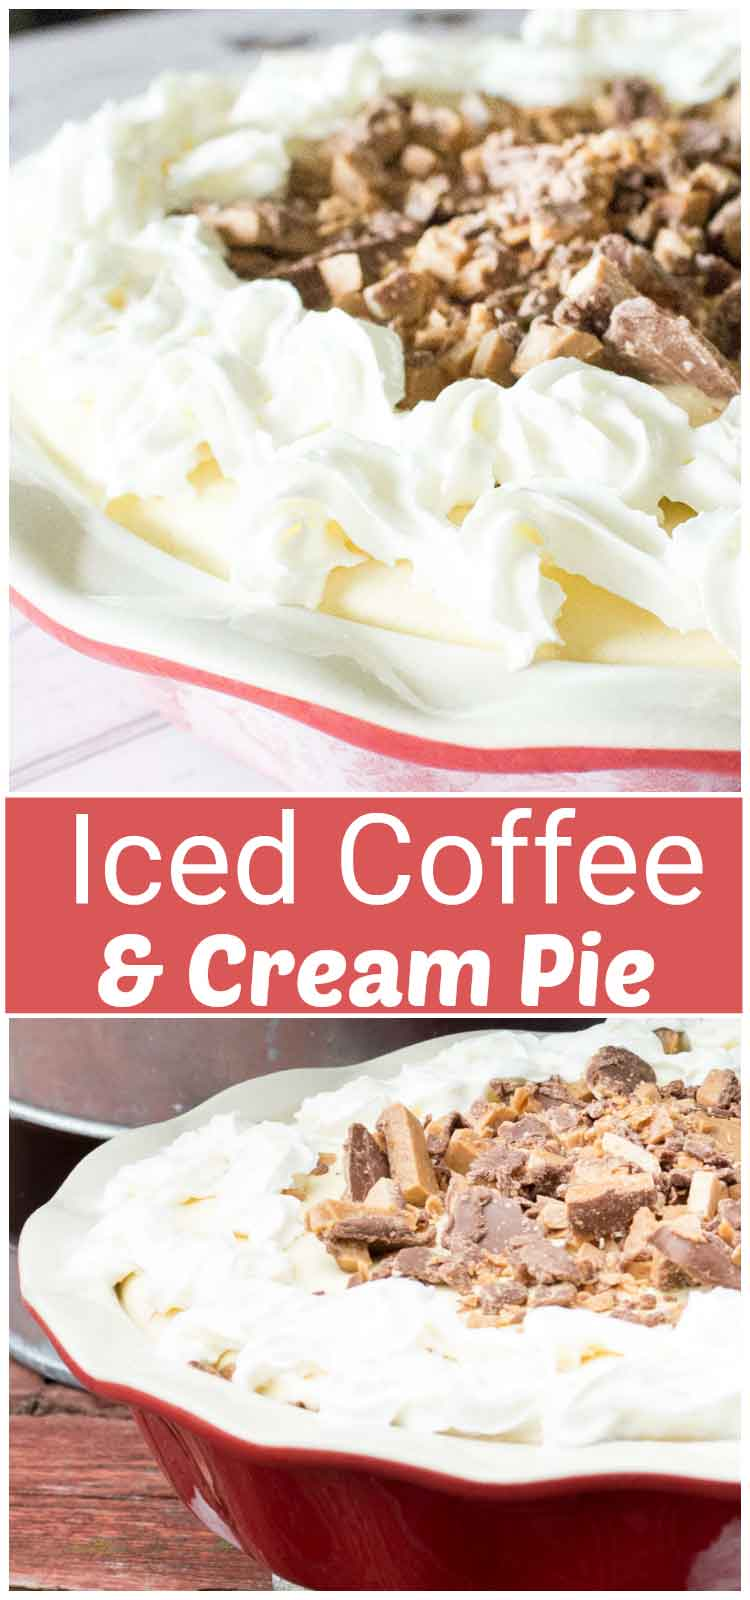 Iced Coffee and Cream Pie? An ice cream pie that tastes like an iced cappuccino and is a cool, yummy treat - one slice just won't be enough! This Iced Coffee and Cream Pie is so easy to make and is a delicious combo of chocolate, vanilla and caramel, with just a hint of coffee liqueur!